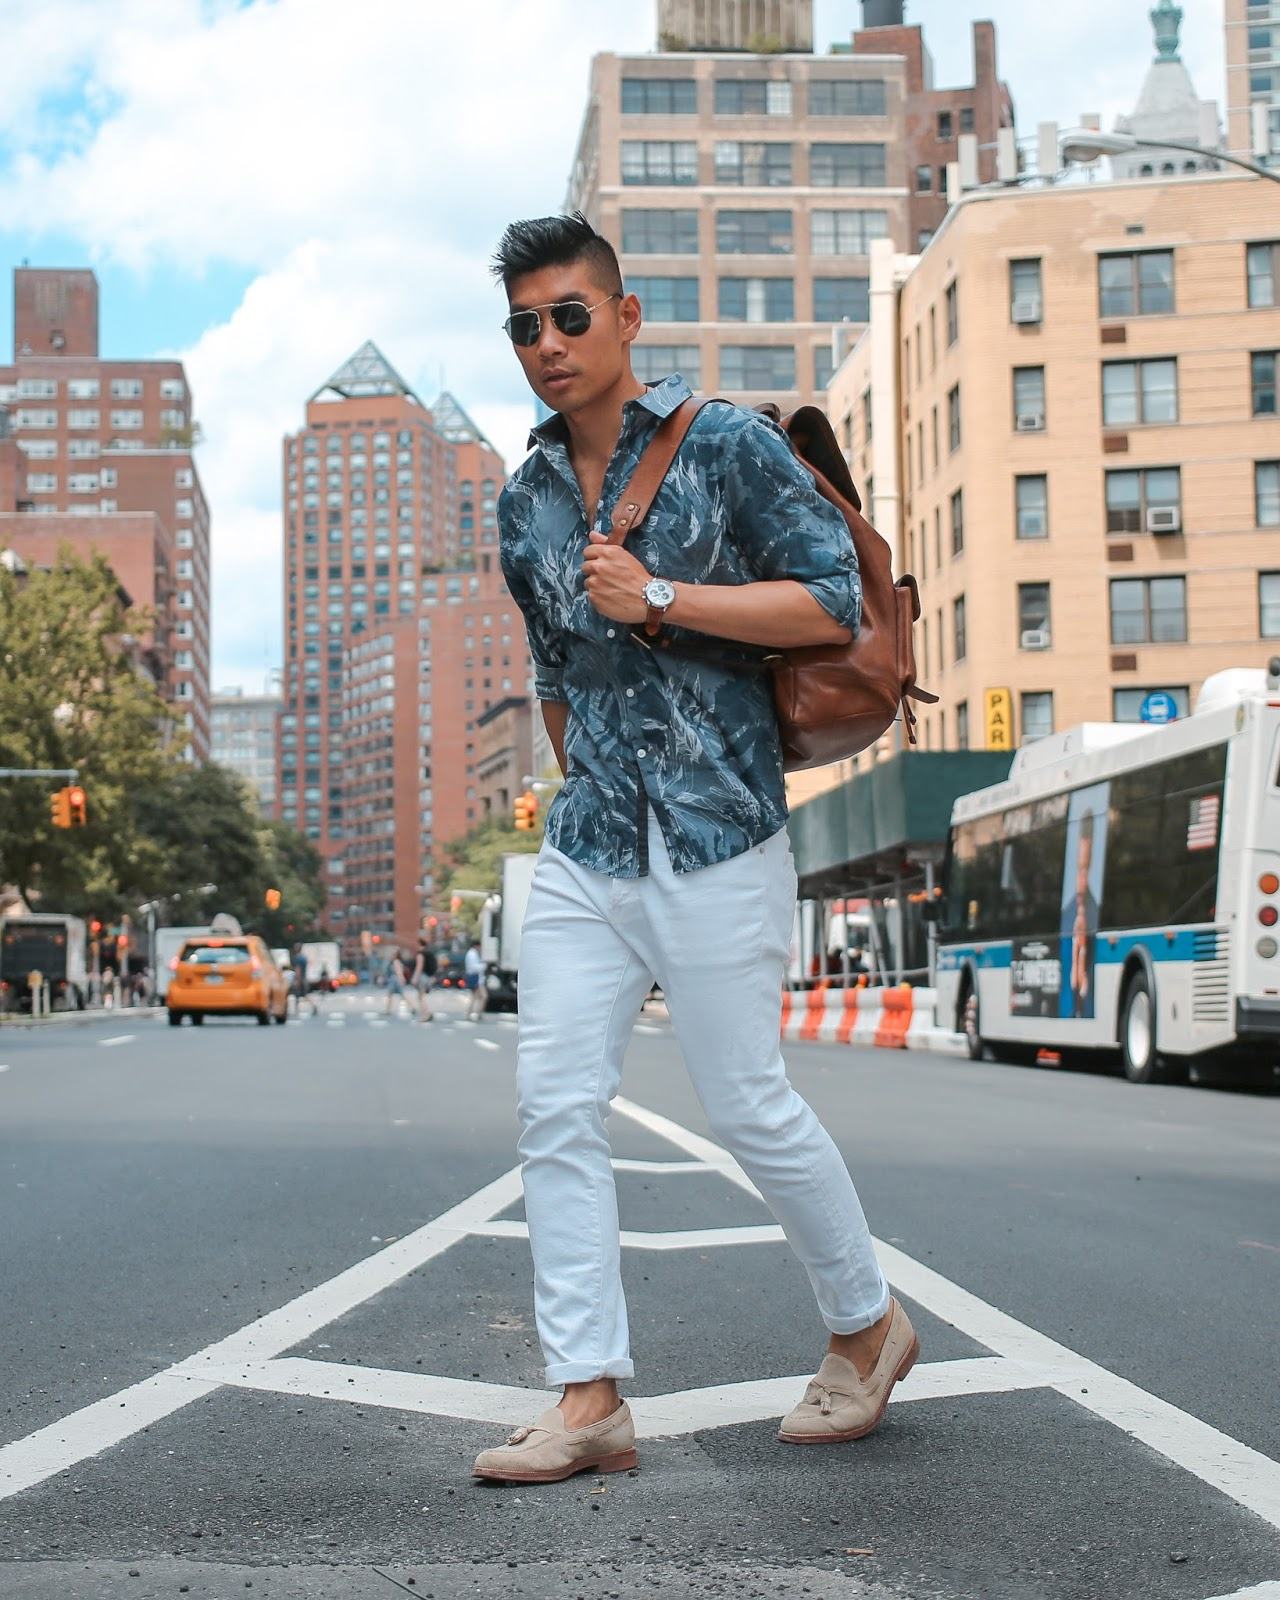 Men Summer Style, Prada Teddy Sunglasses, Suede Loafers, Coach Leather Backpack, Movado, Menswear, Levitate Style, Leo Chan